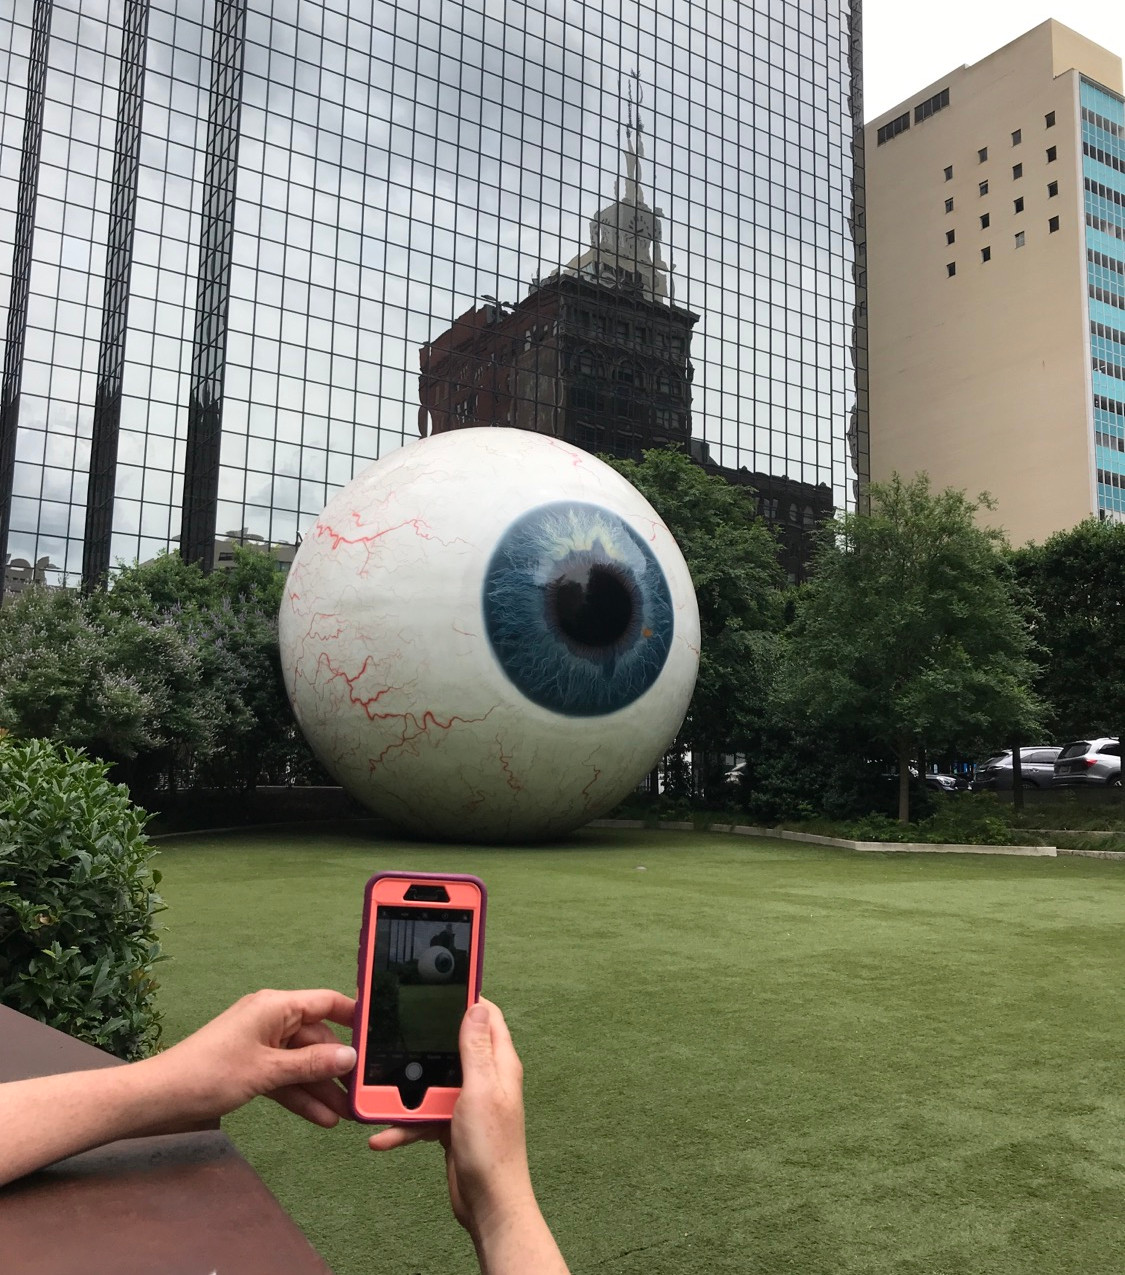 The Eyeball (in large and small)